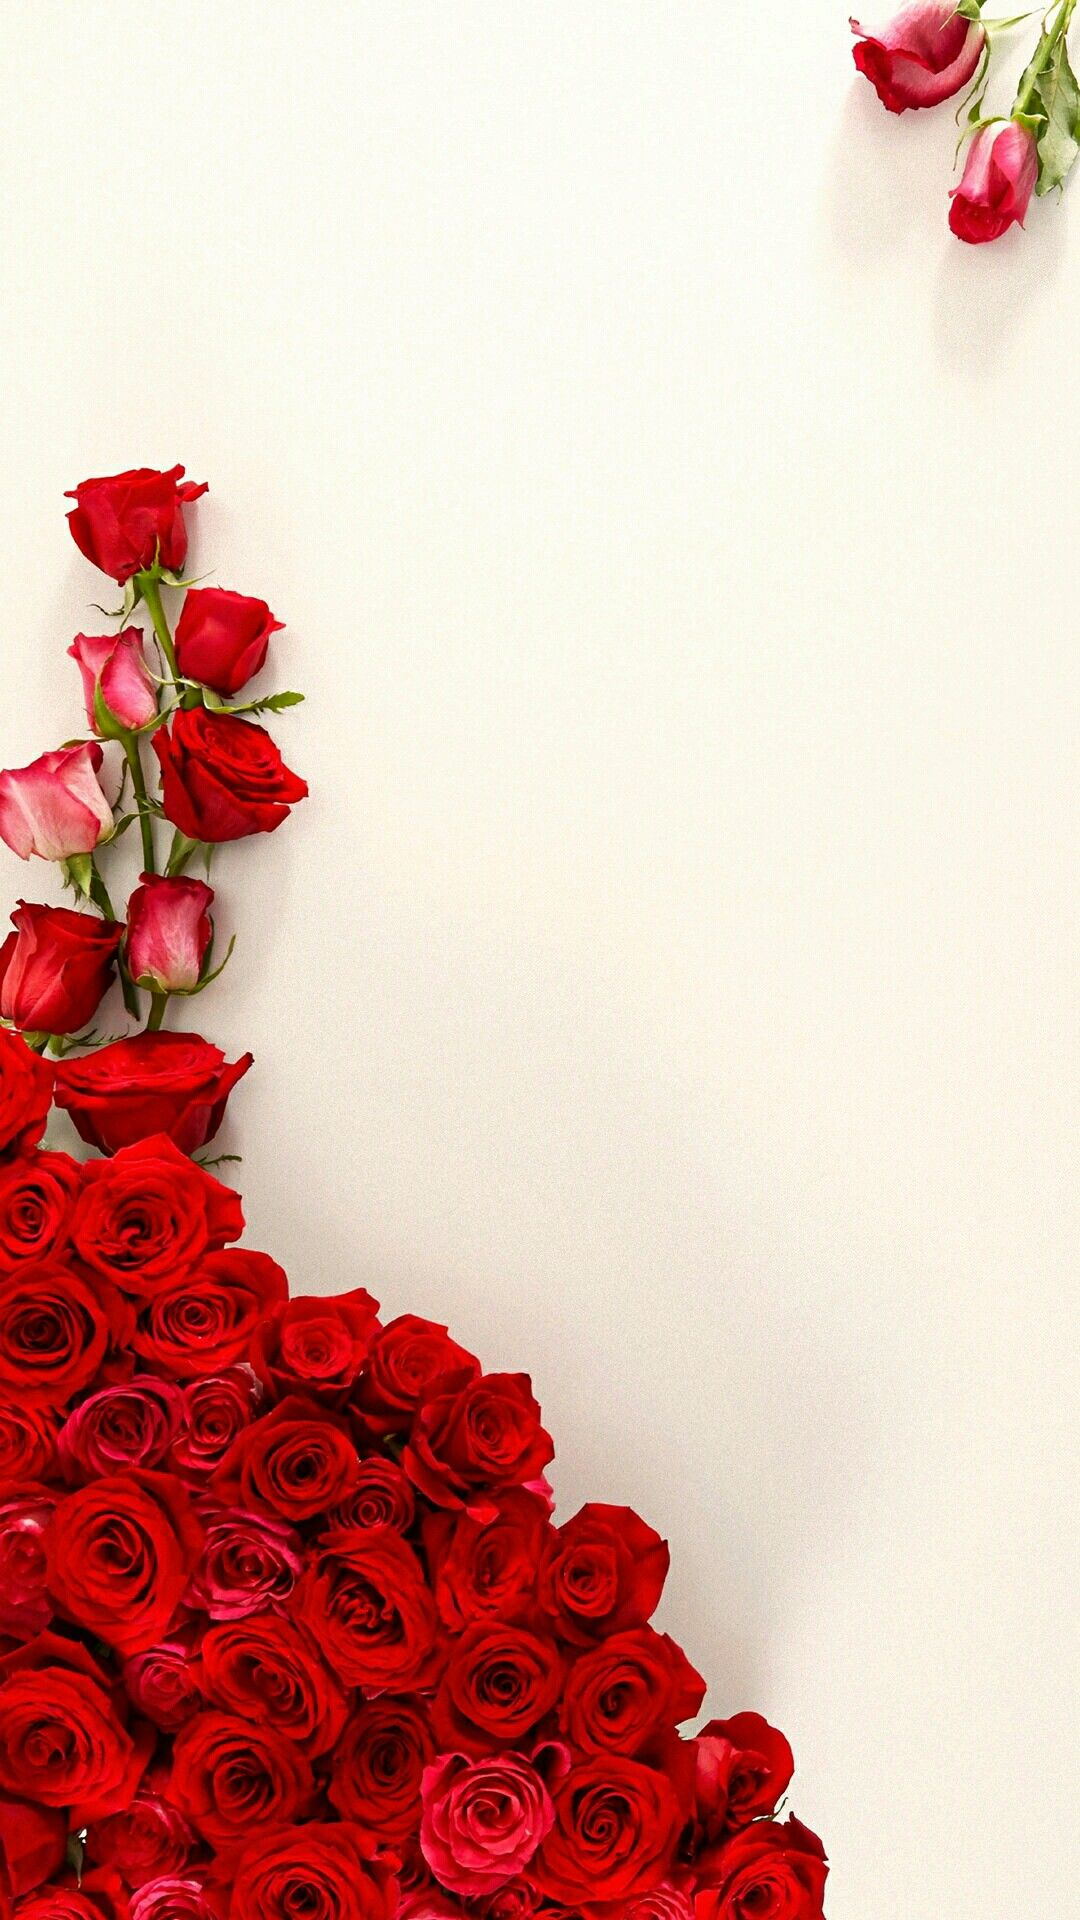 Wallpaper By Artist Unknown Red Roses Wallpaper Nature